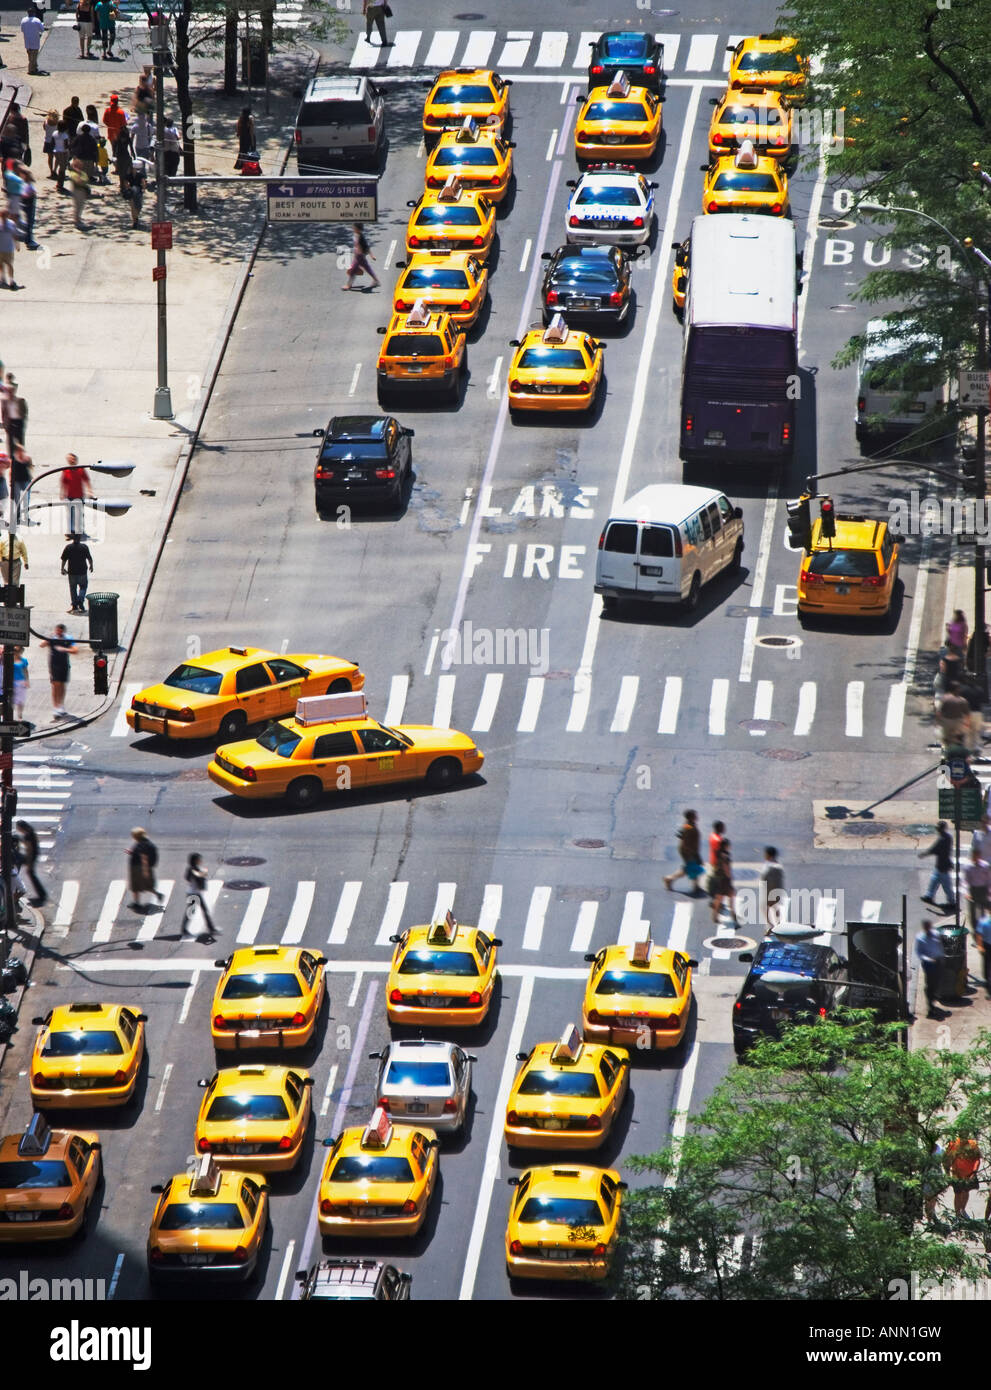 Taxis on 5th Avenue, New York City - Stock Image